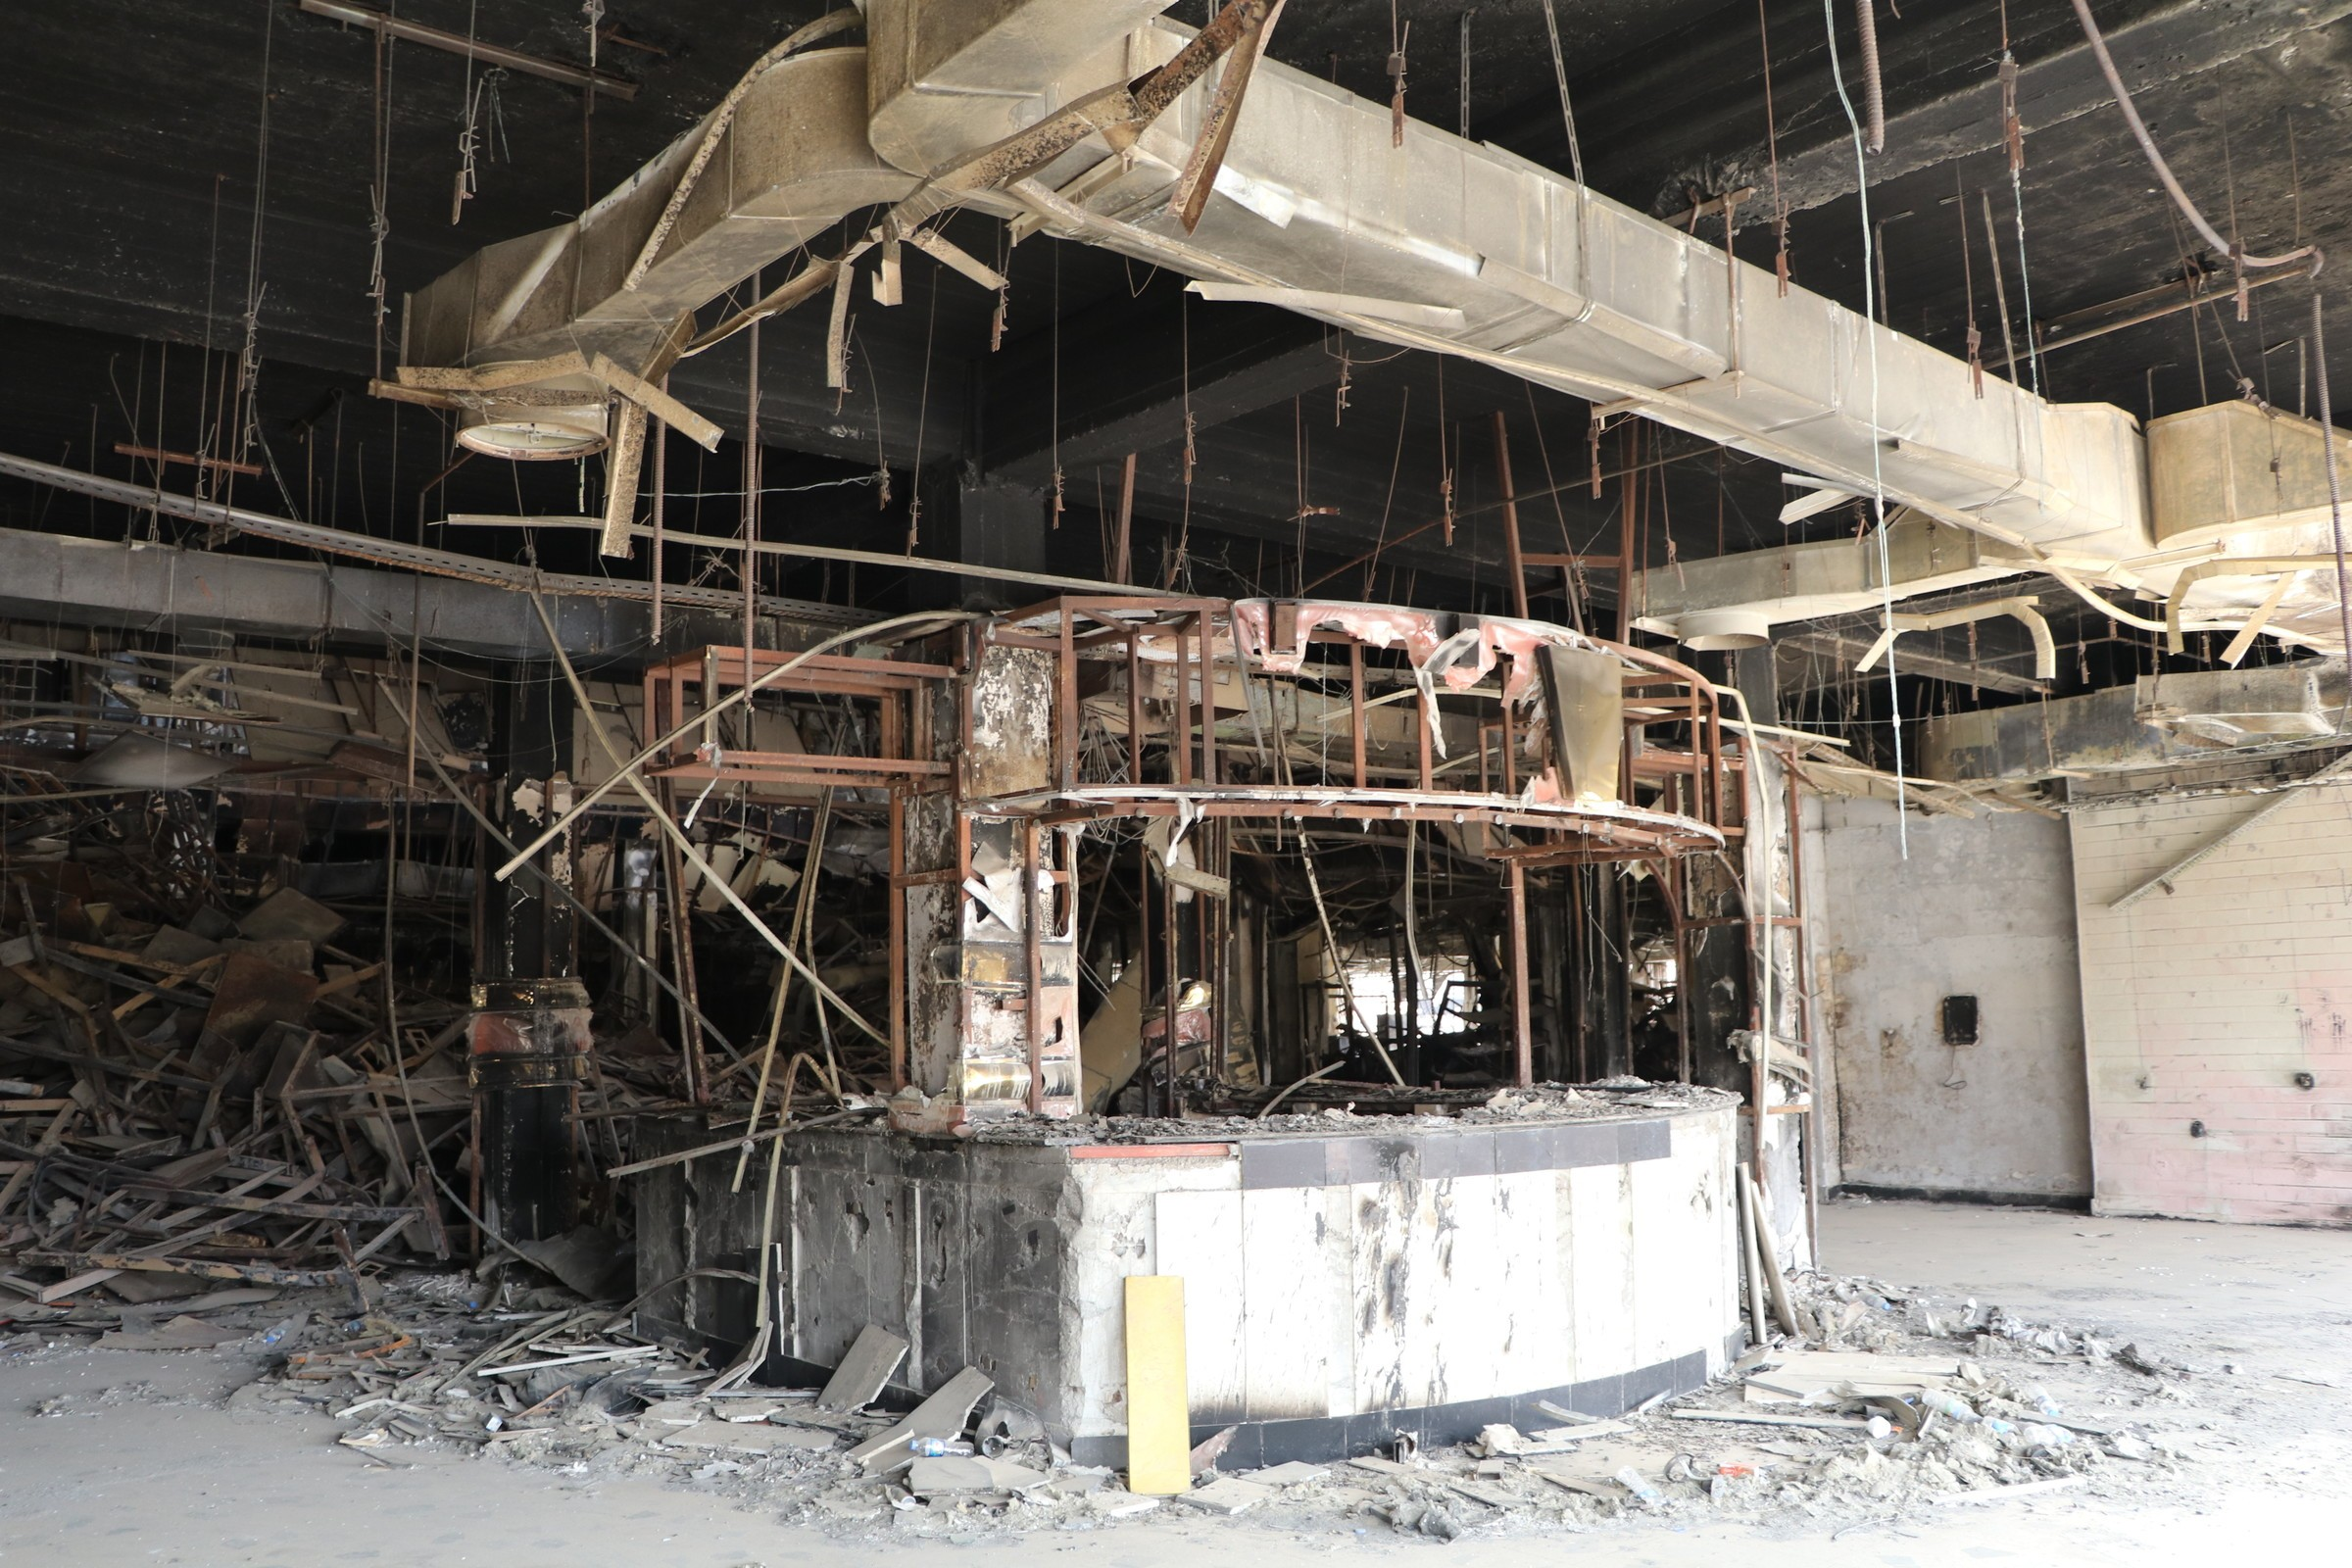 Islamic state destroyed the main library in the city of Mosul 02/23/2015 83